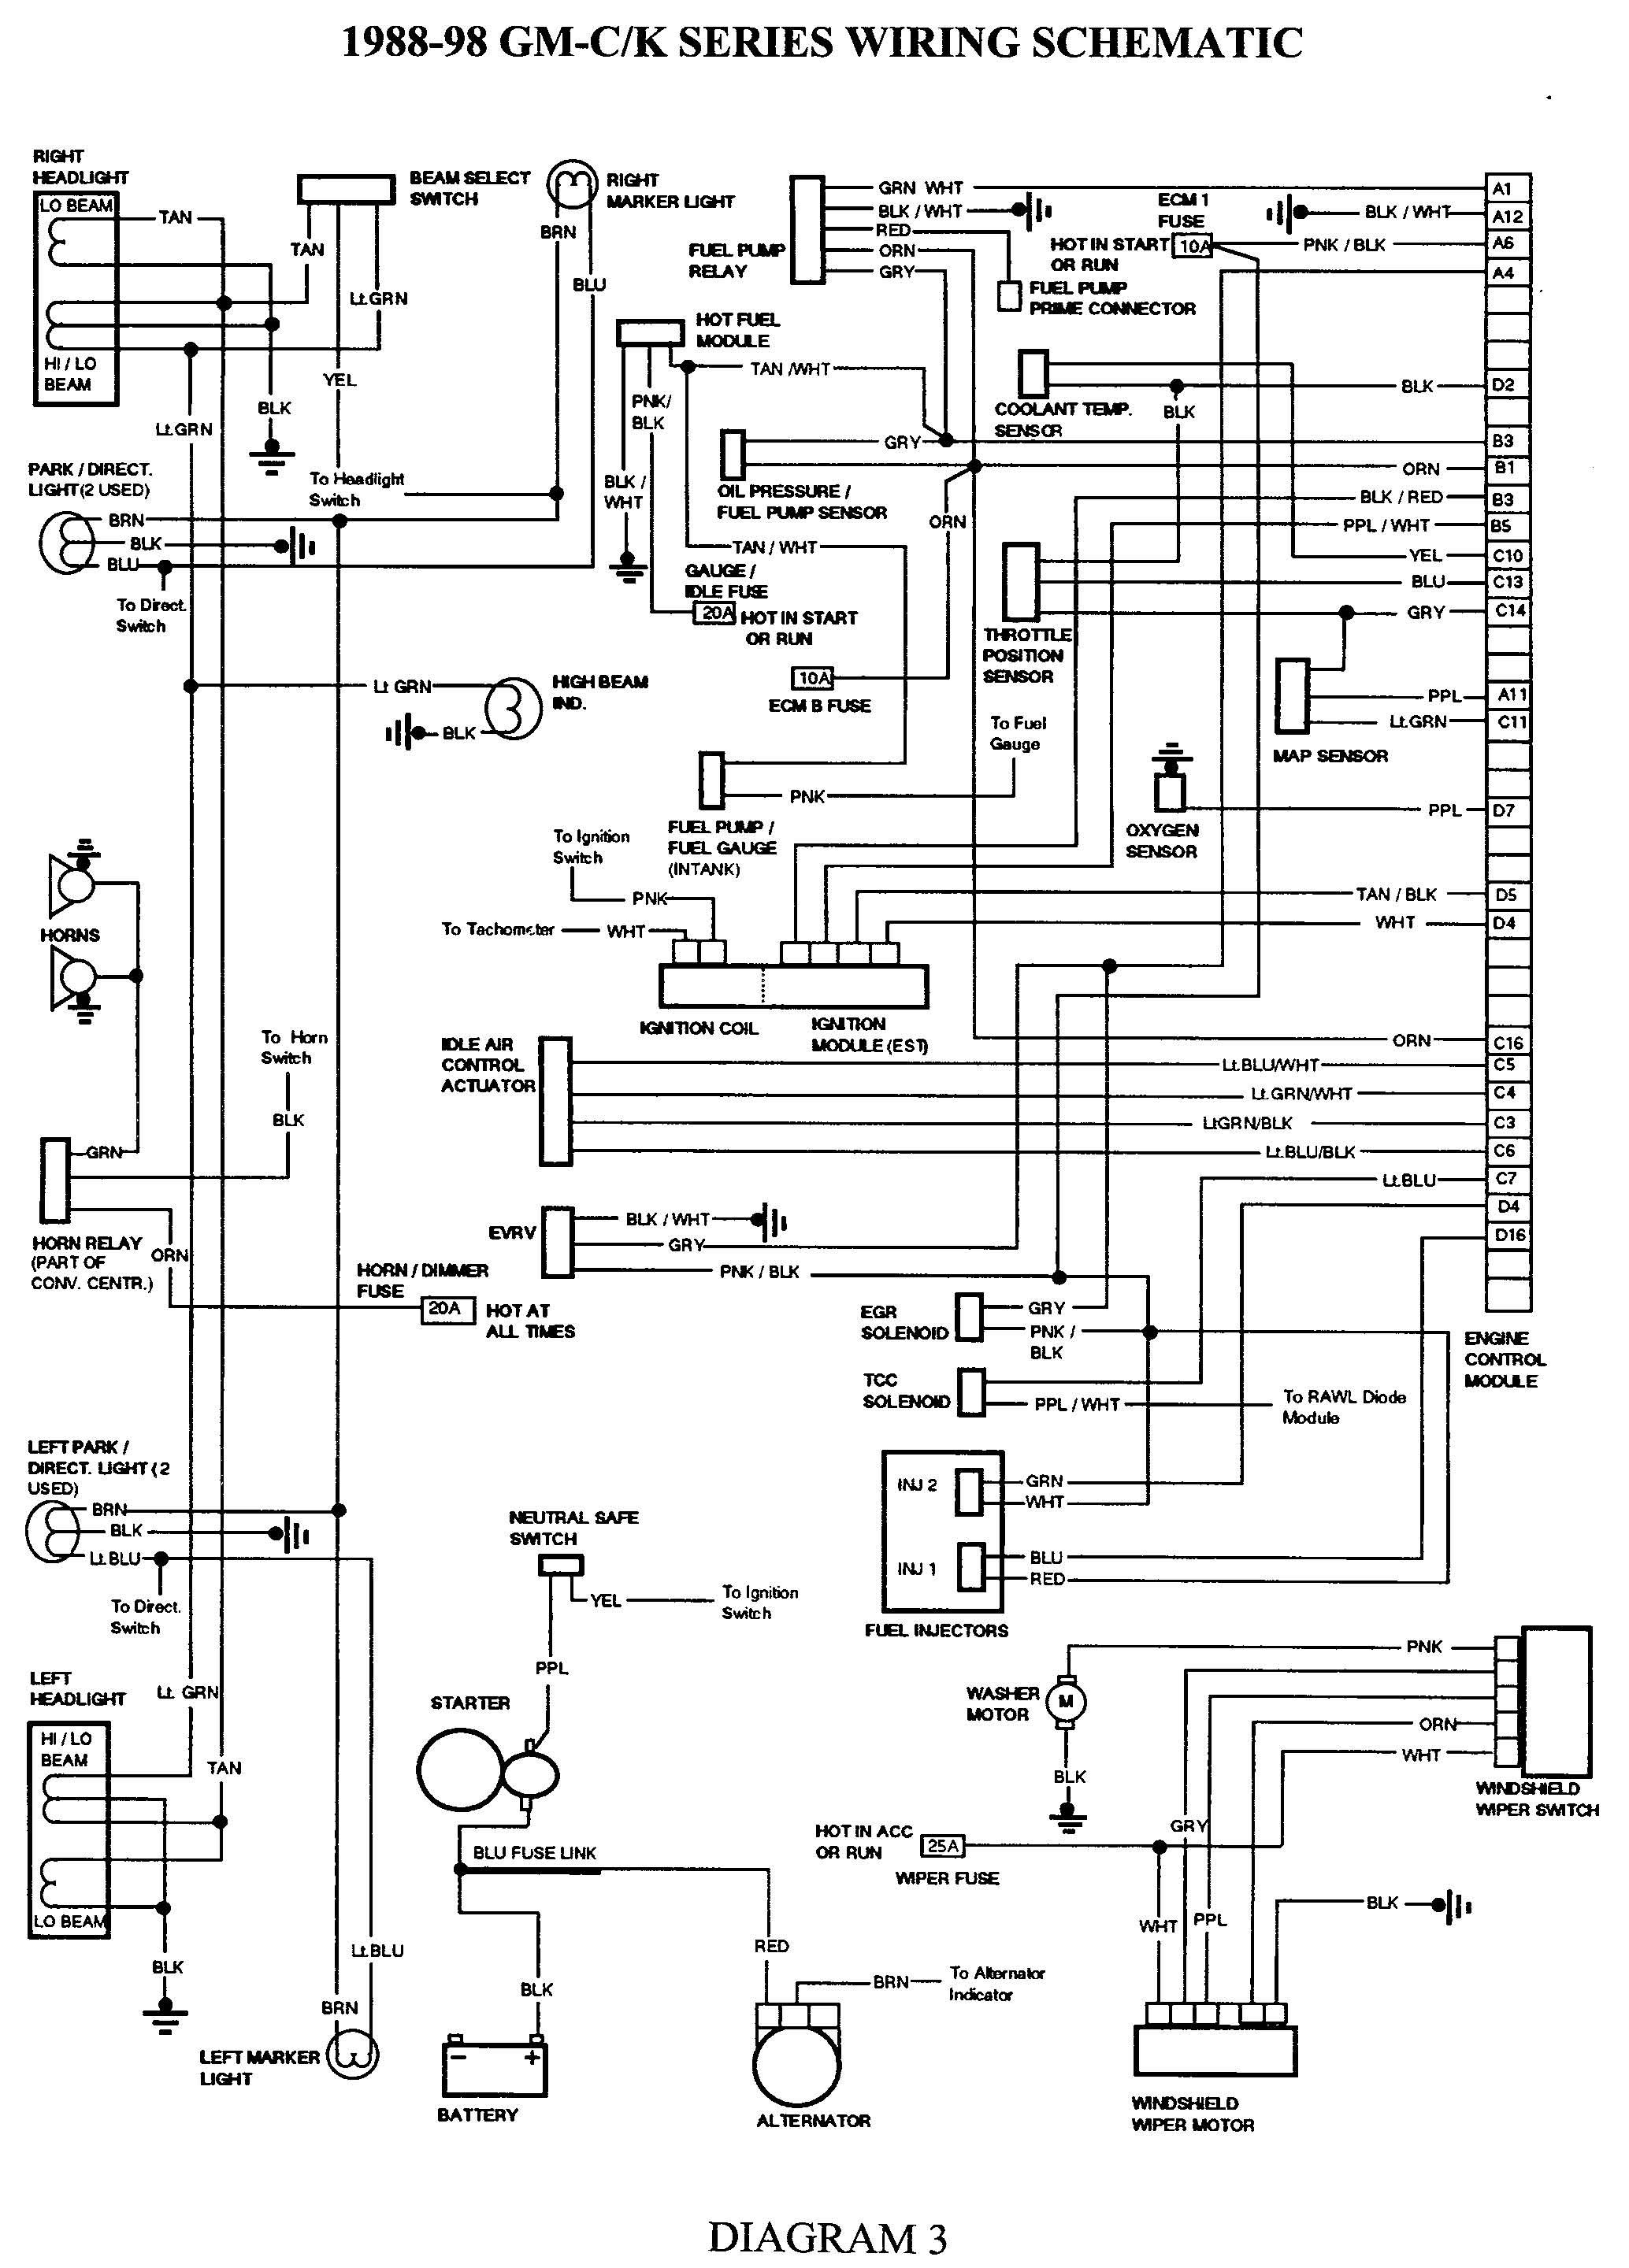 b2f2e5dbdc07dada83ef514f6d4ce3d4 gmc truck wiring diagrams on gm wiring harness diagram 88 98 kc wiring harness diagram at edmiracle.co